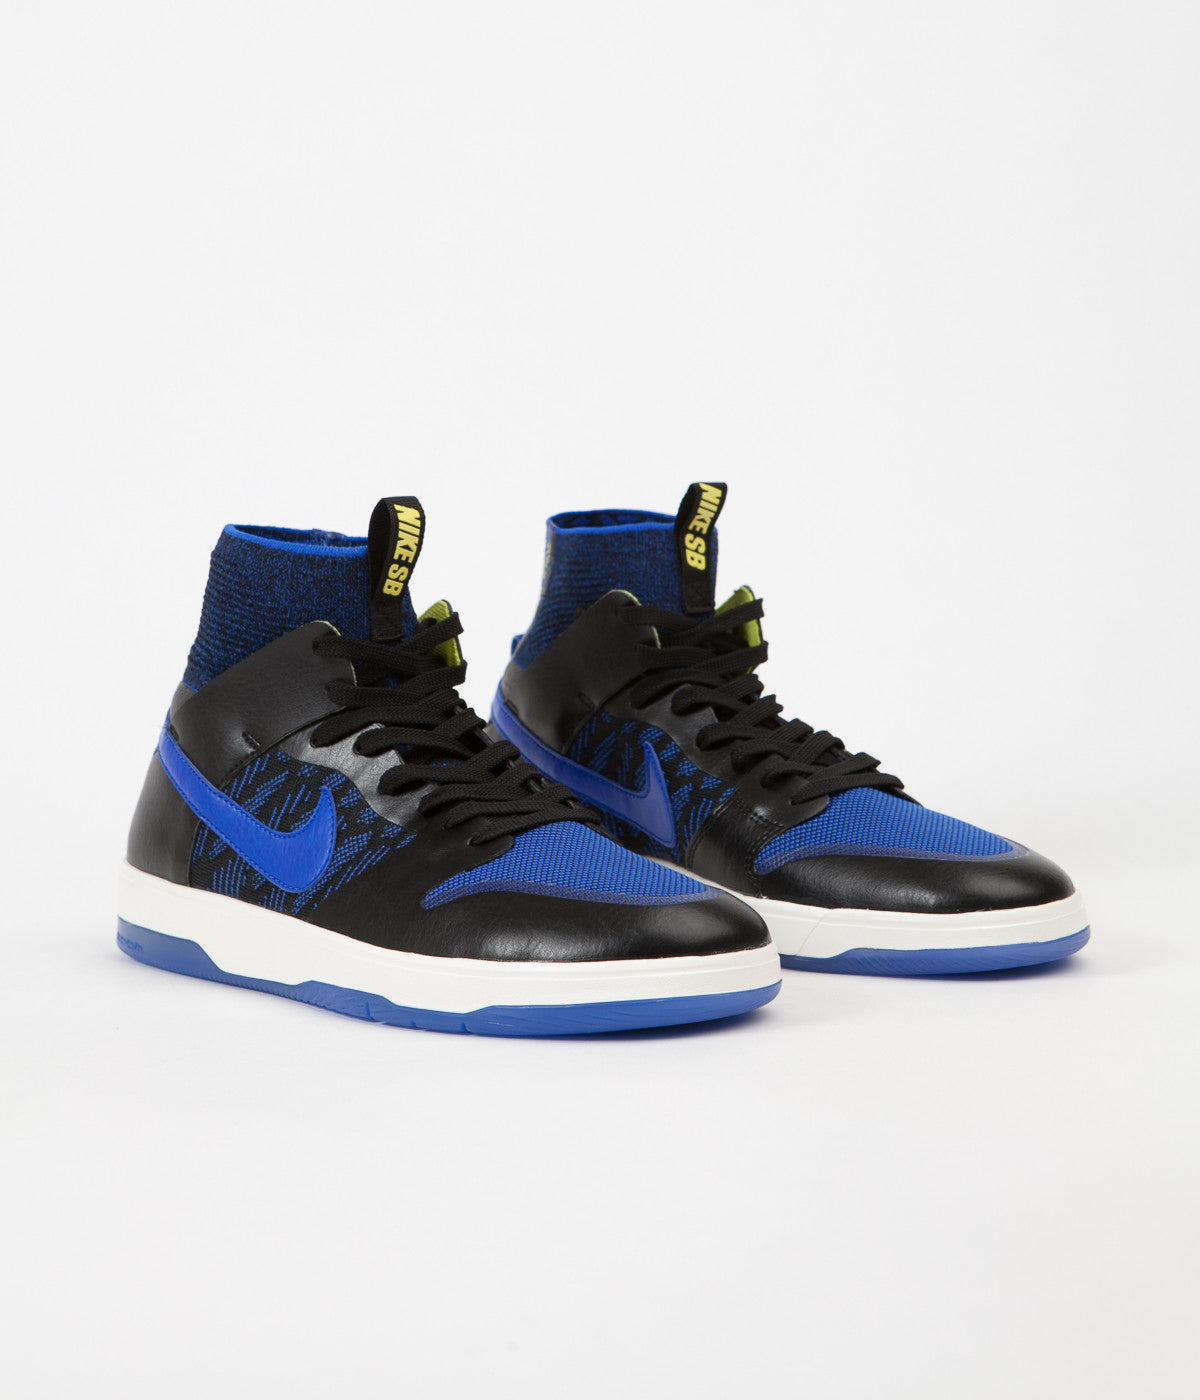 1c567570832d Nike SB Dunk High Elite QS Shoes - Black Racer Blue - Sail  Nike Sb Zoom ...